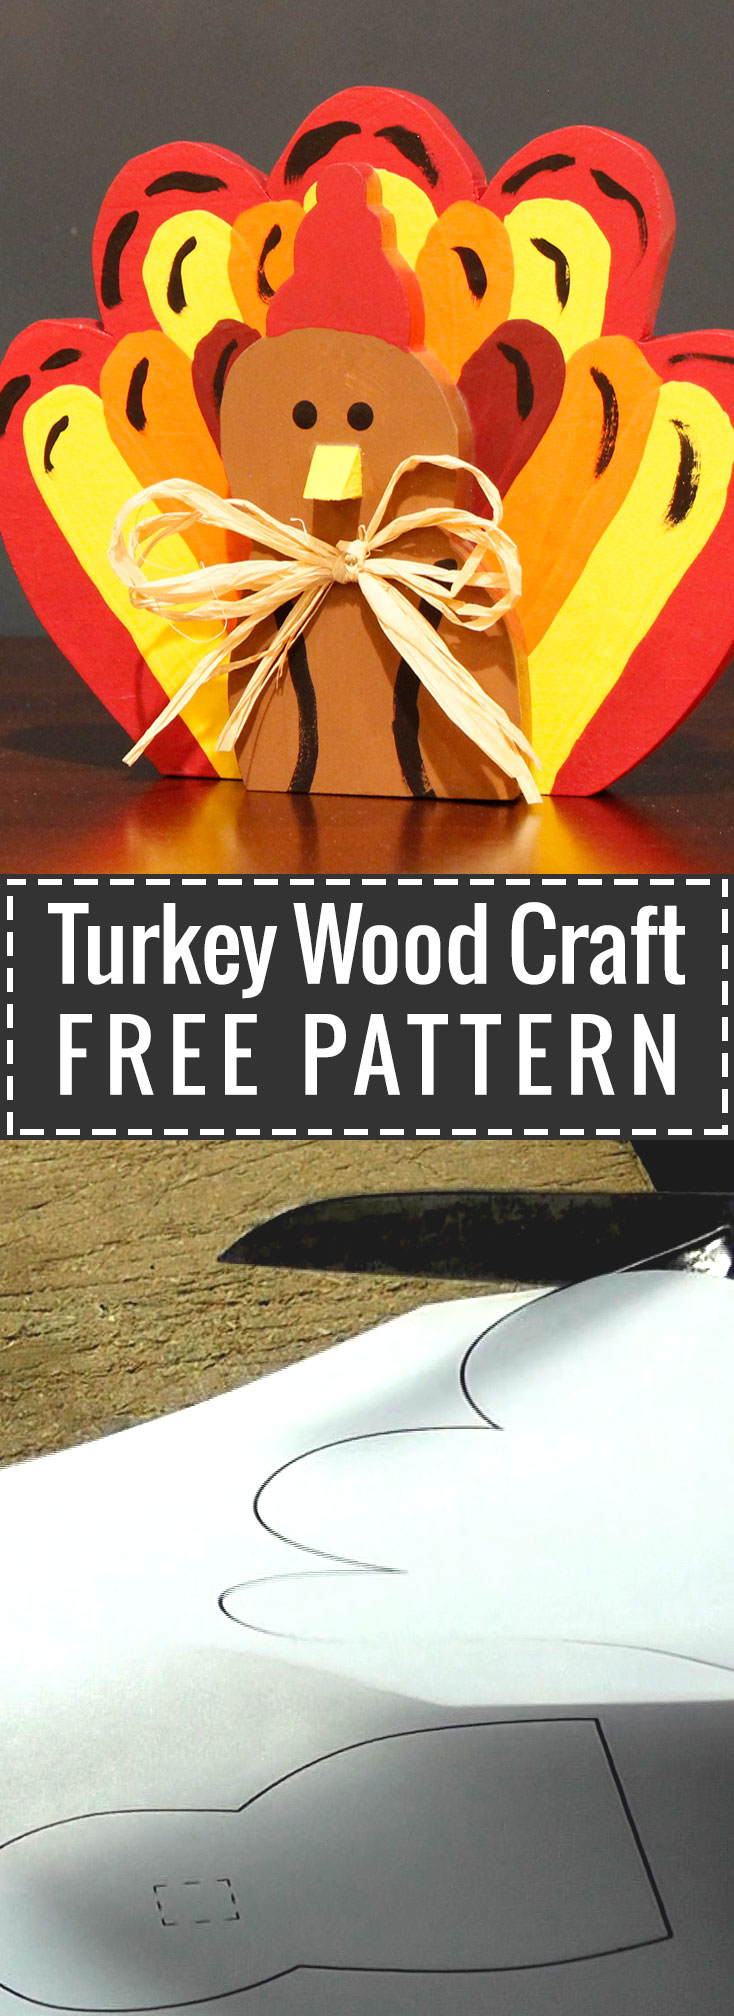 Turkey Wood Craft Free Pattern